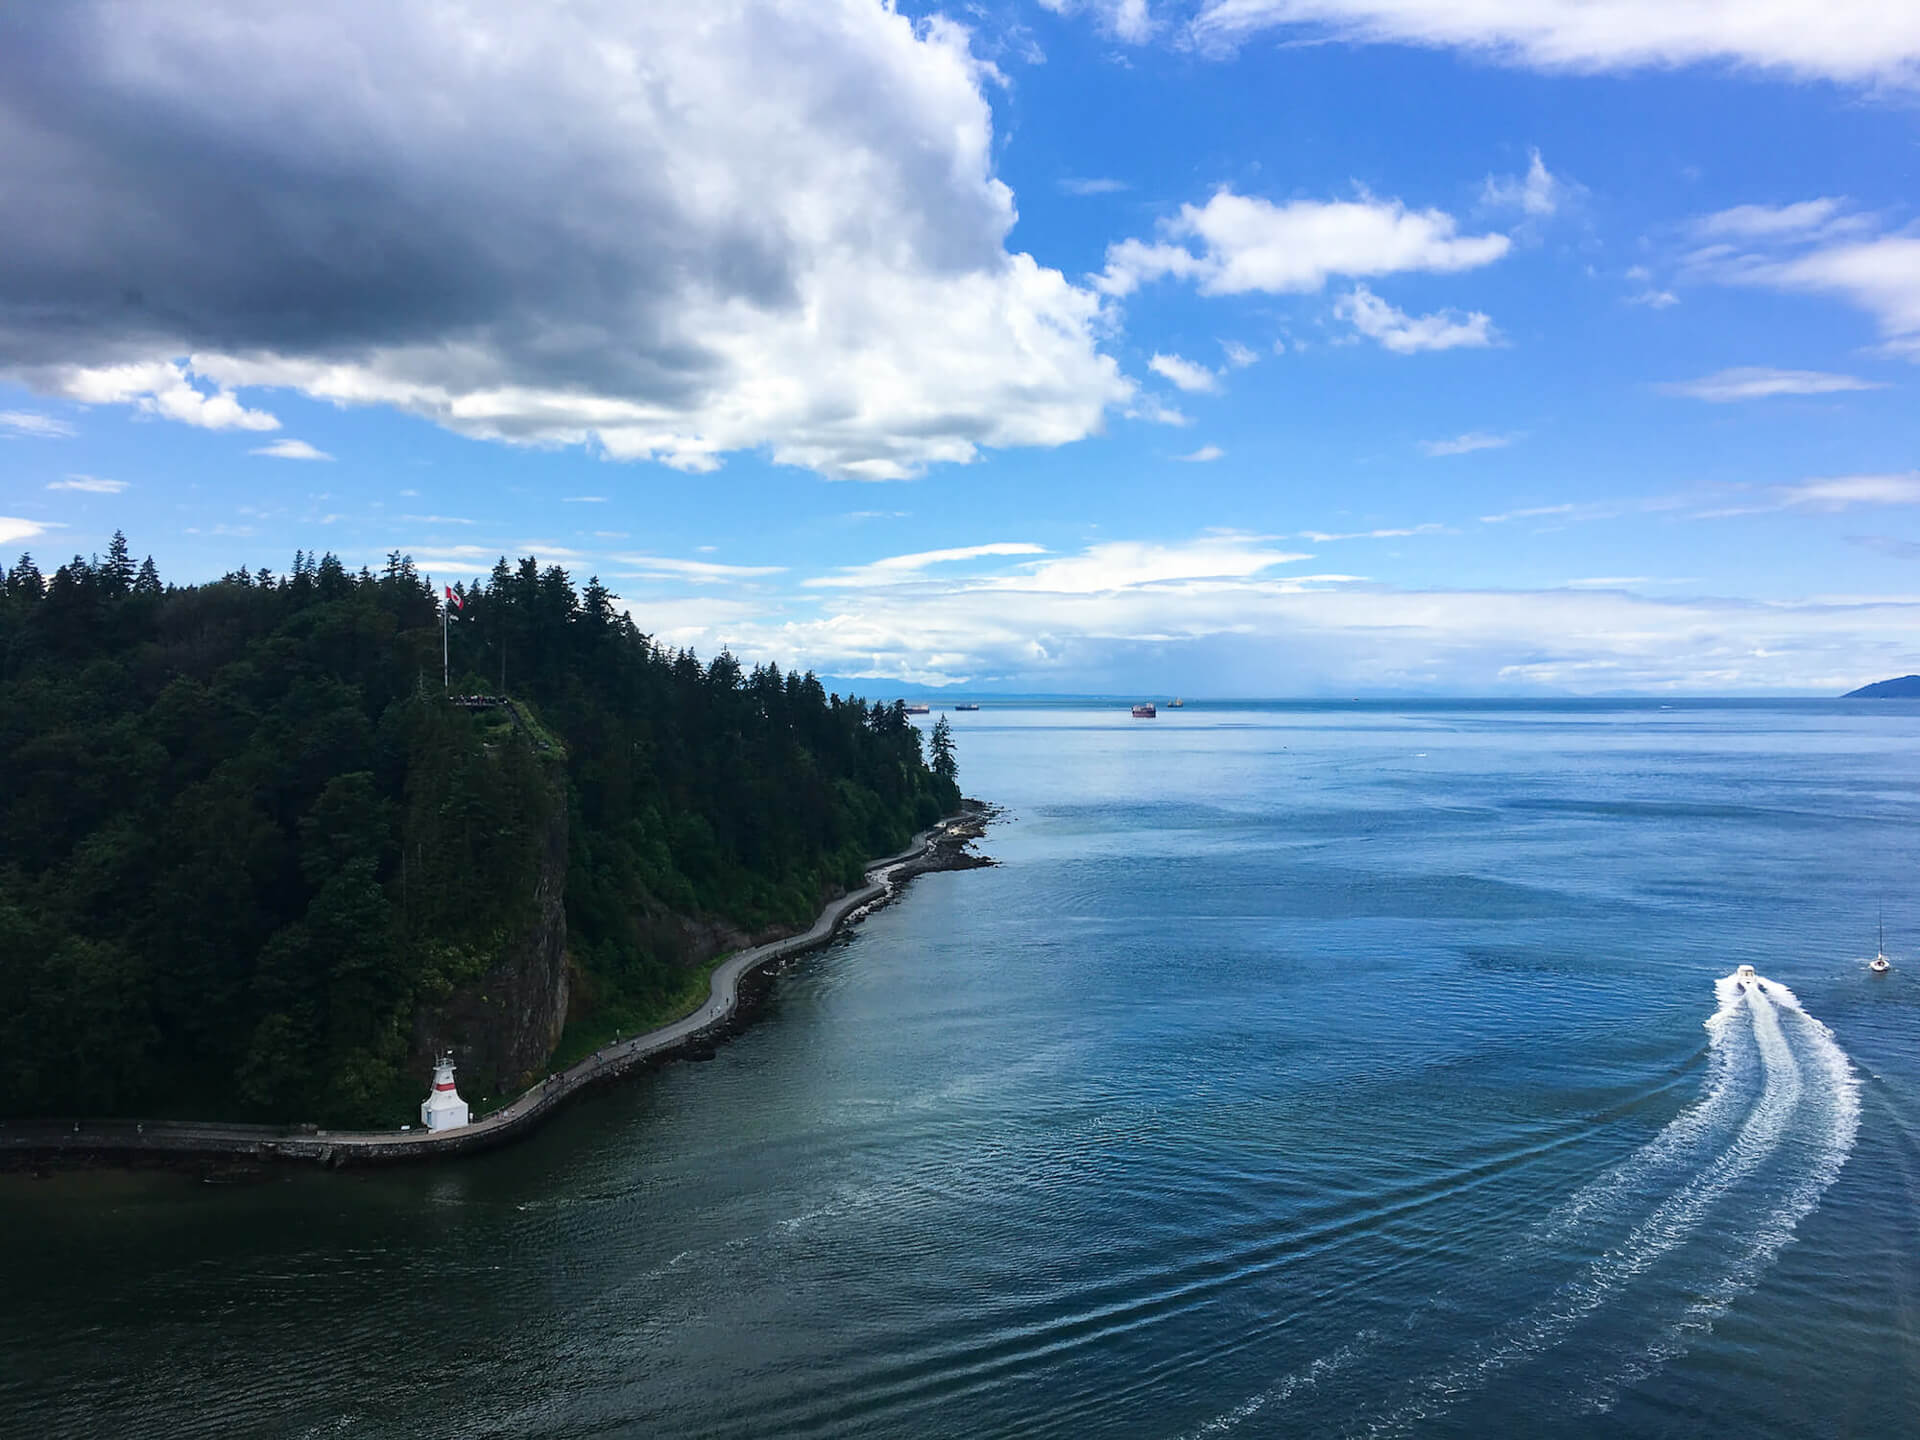 Vancouver's Stanley Park from Lions Gate Bridge